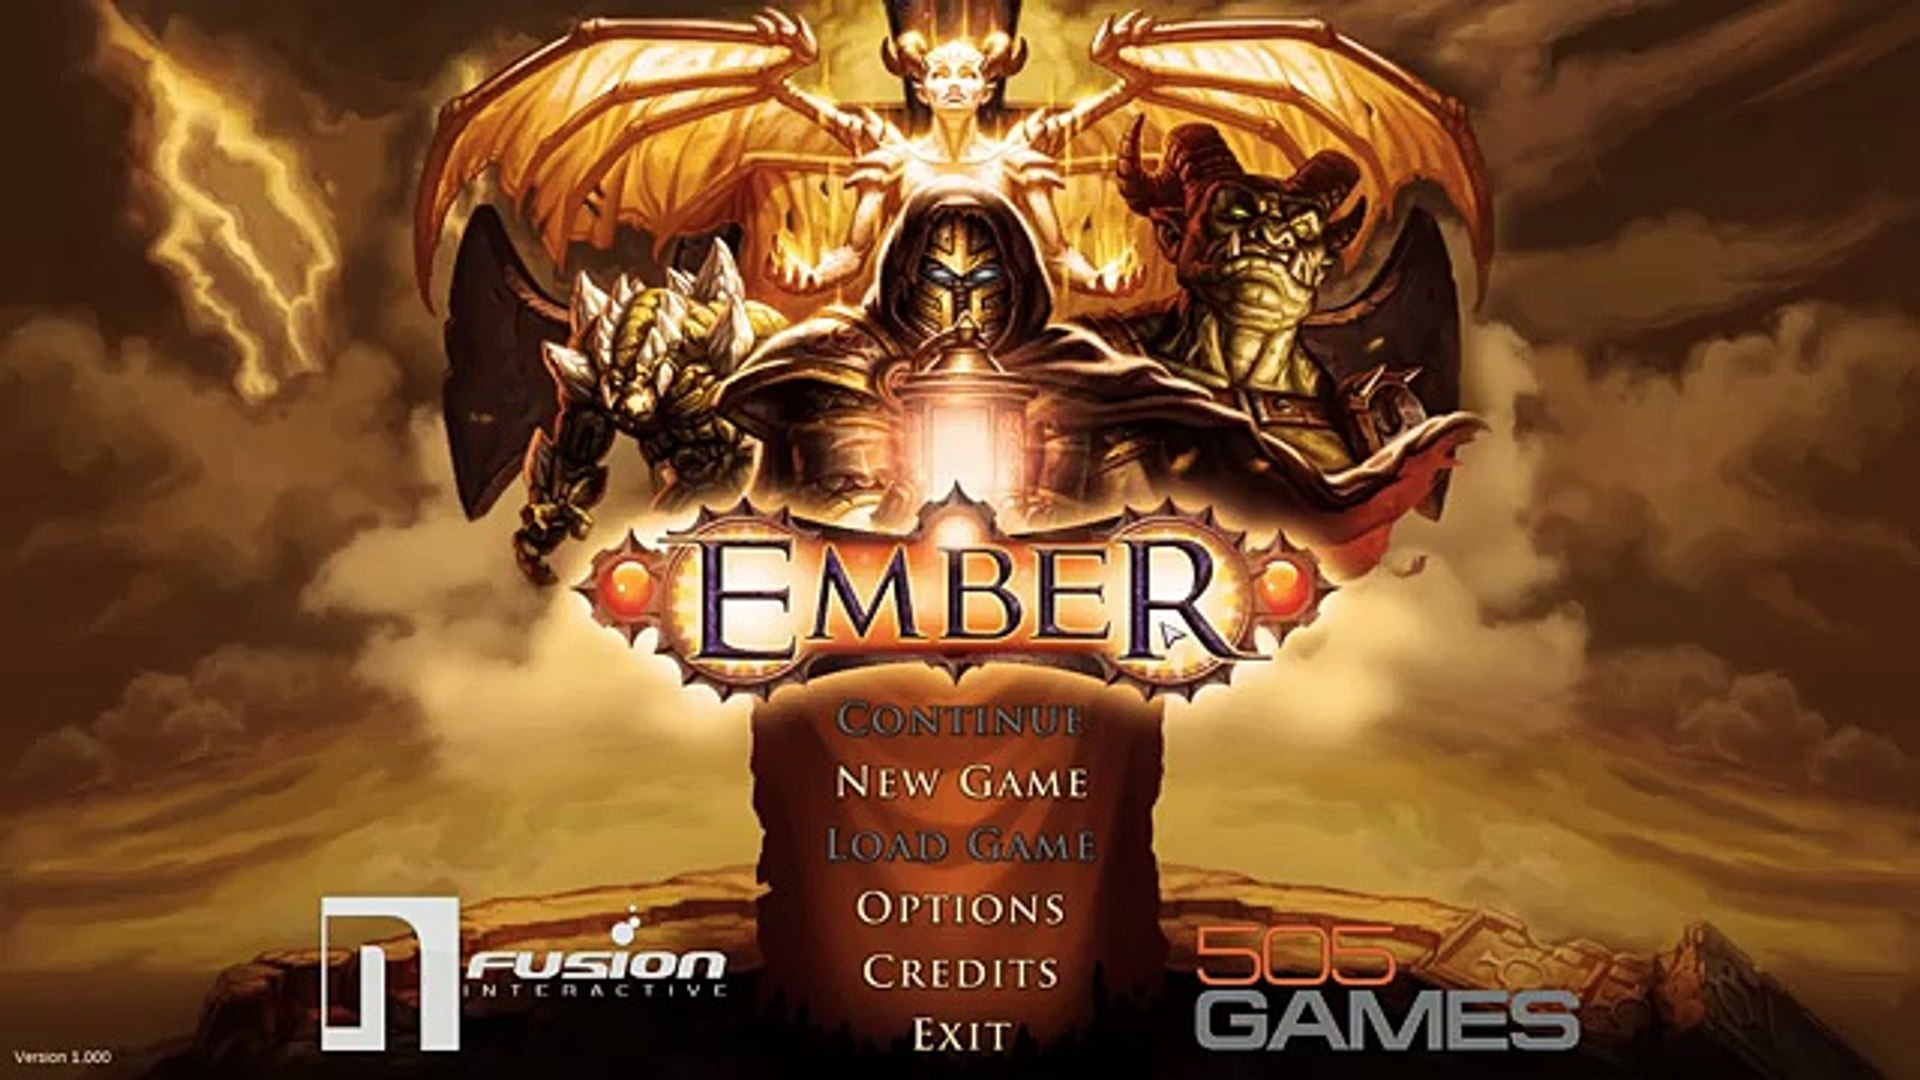 Ember - Quick Game Review